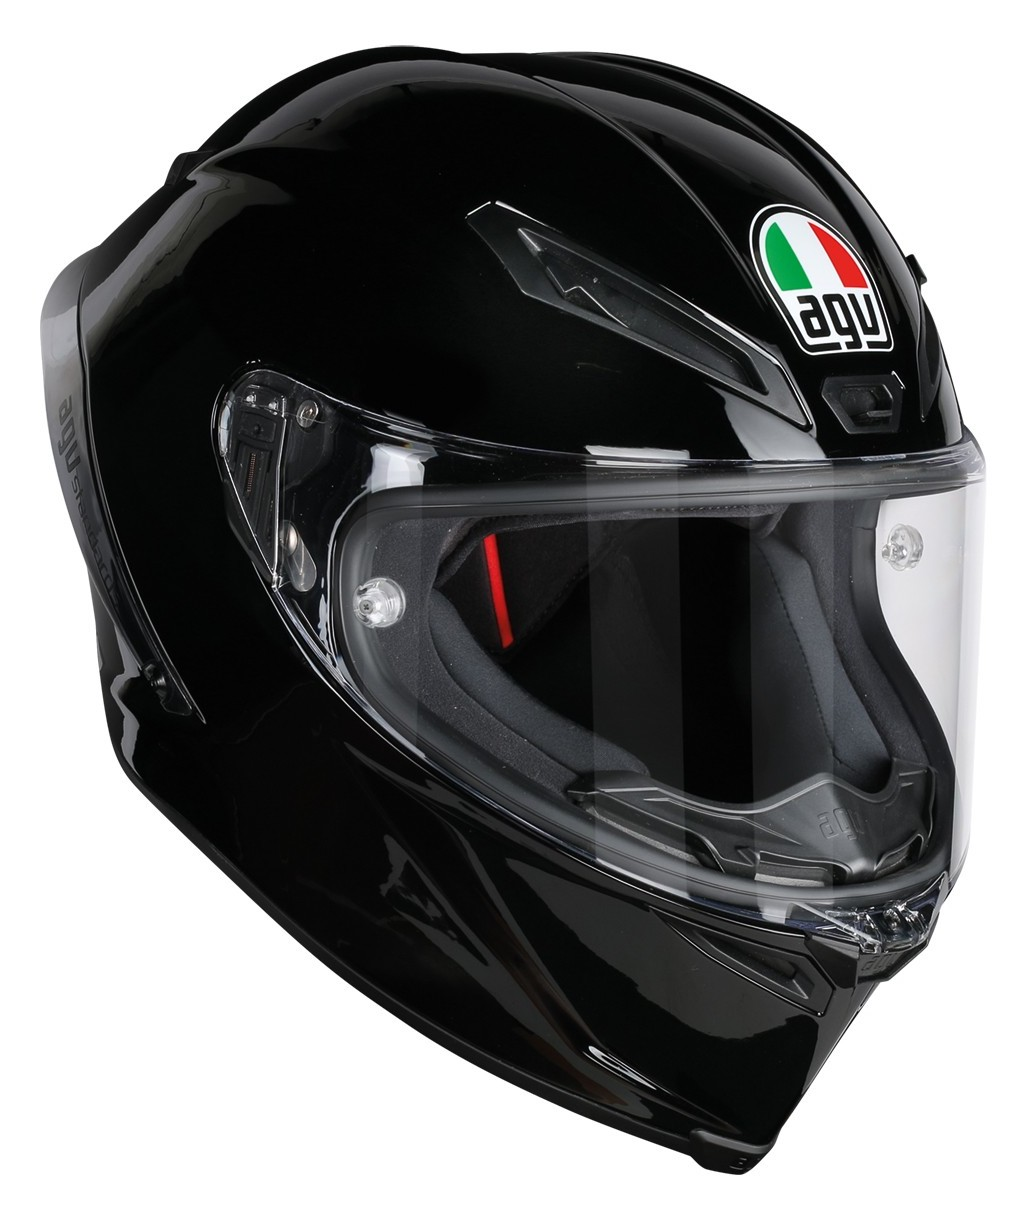 Agv Corsa R Helmet Cycle Gear